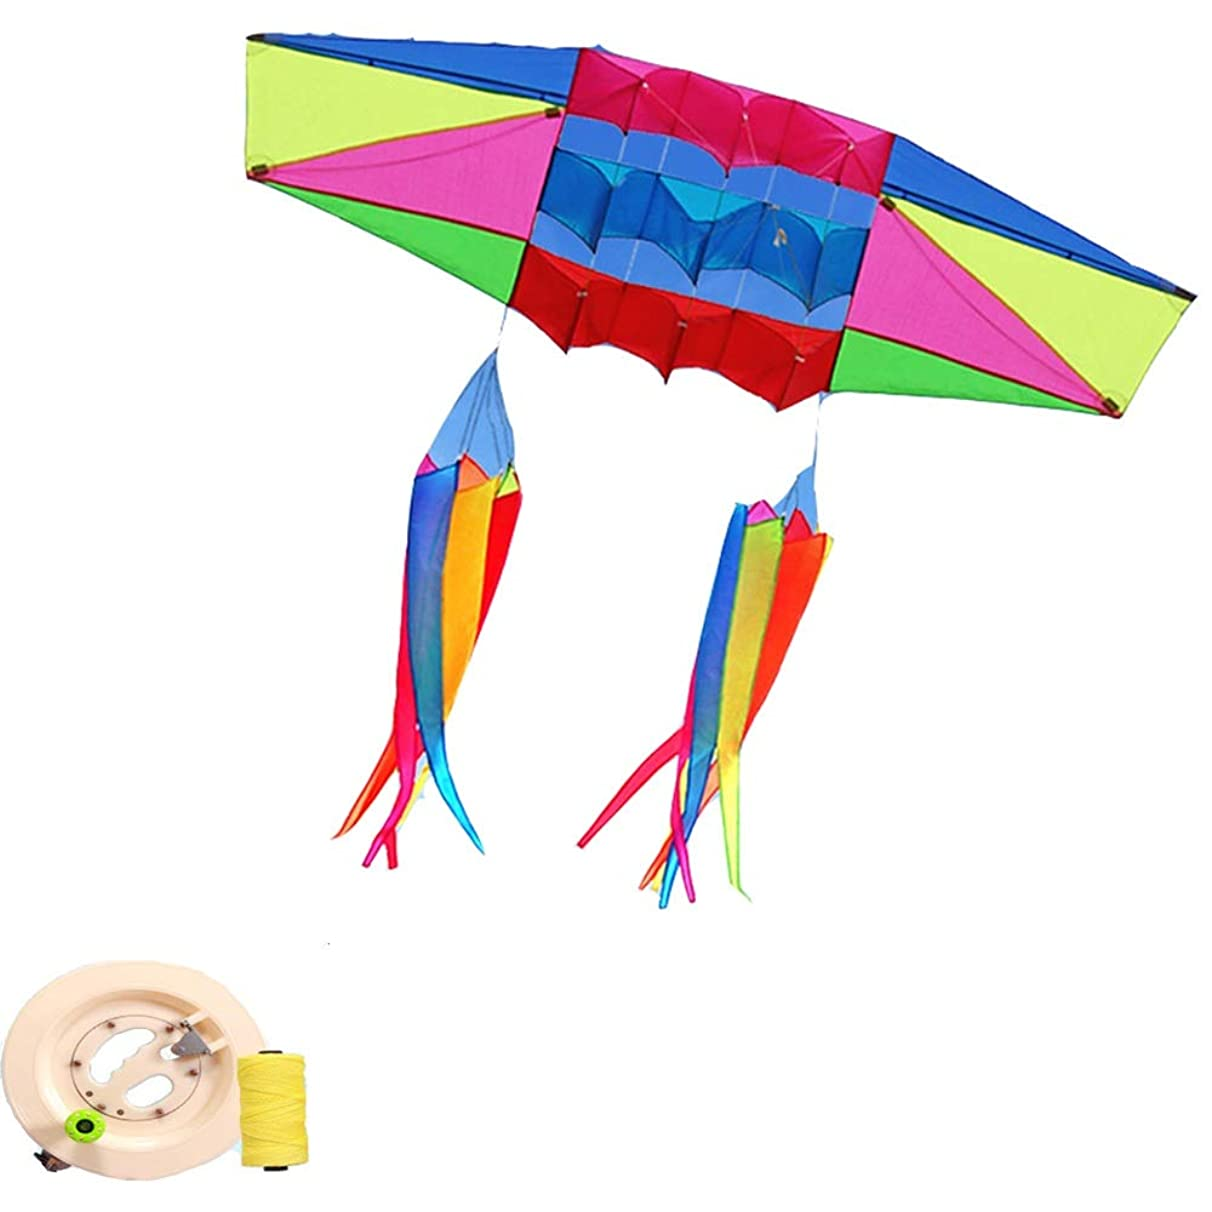 Kite,Flying Spring Toy Radar Umbrella Cloth Kite, Front Pole Stereo Large Adult Kite Easy to Fly Kite line Wheel Puller Multi-Style Optional (Color : C)